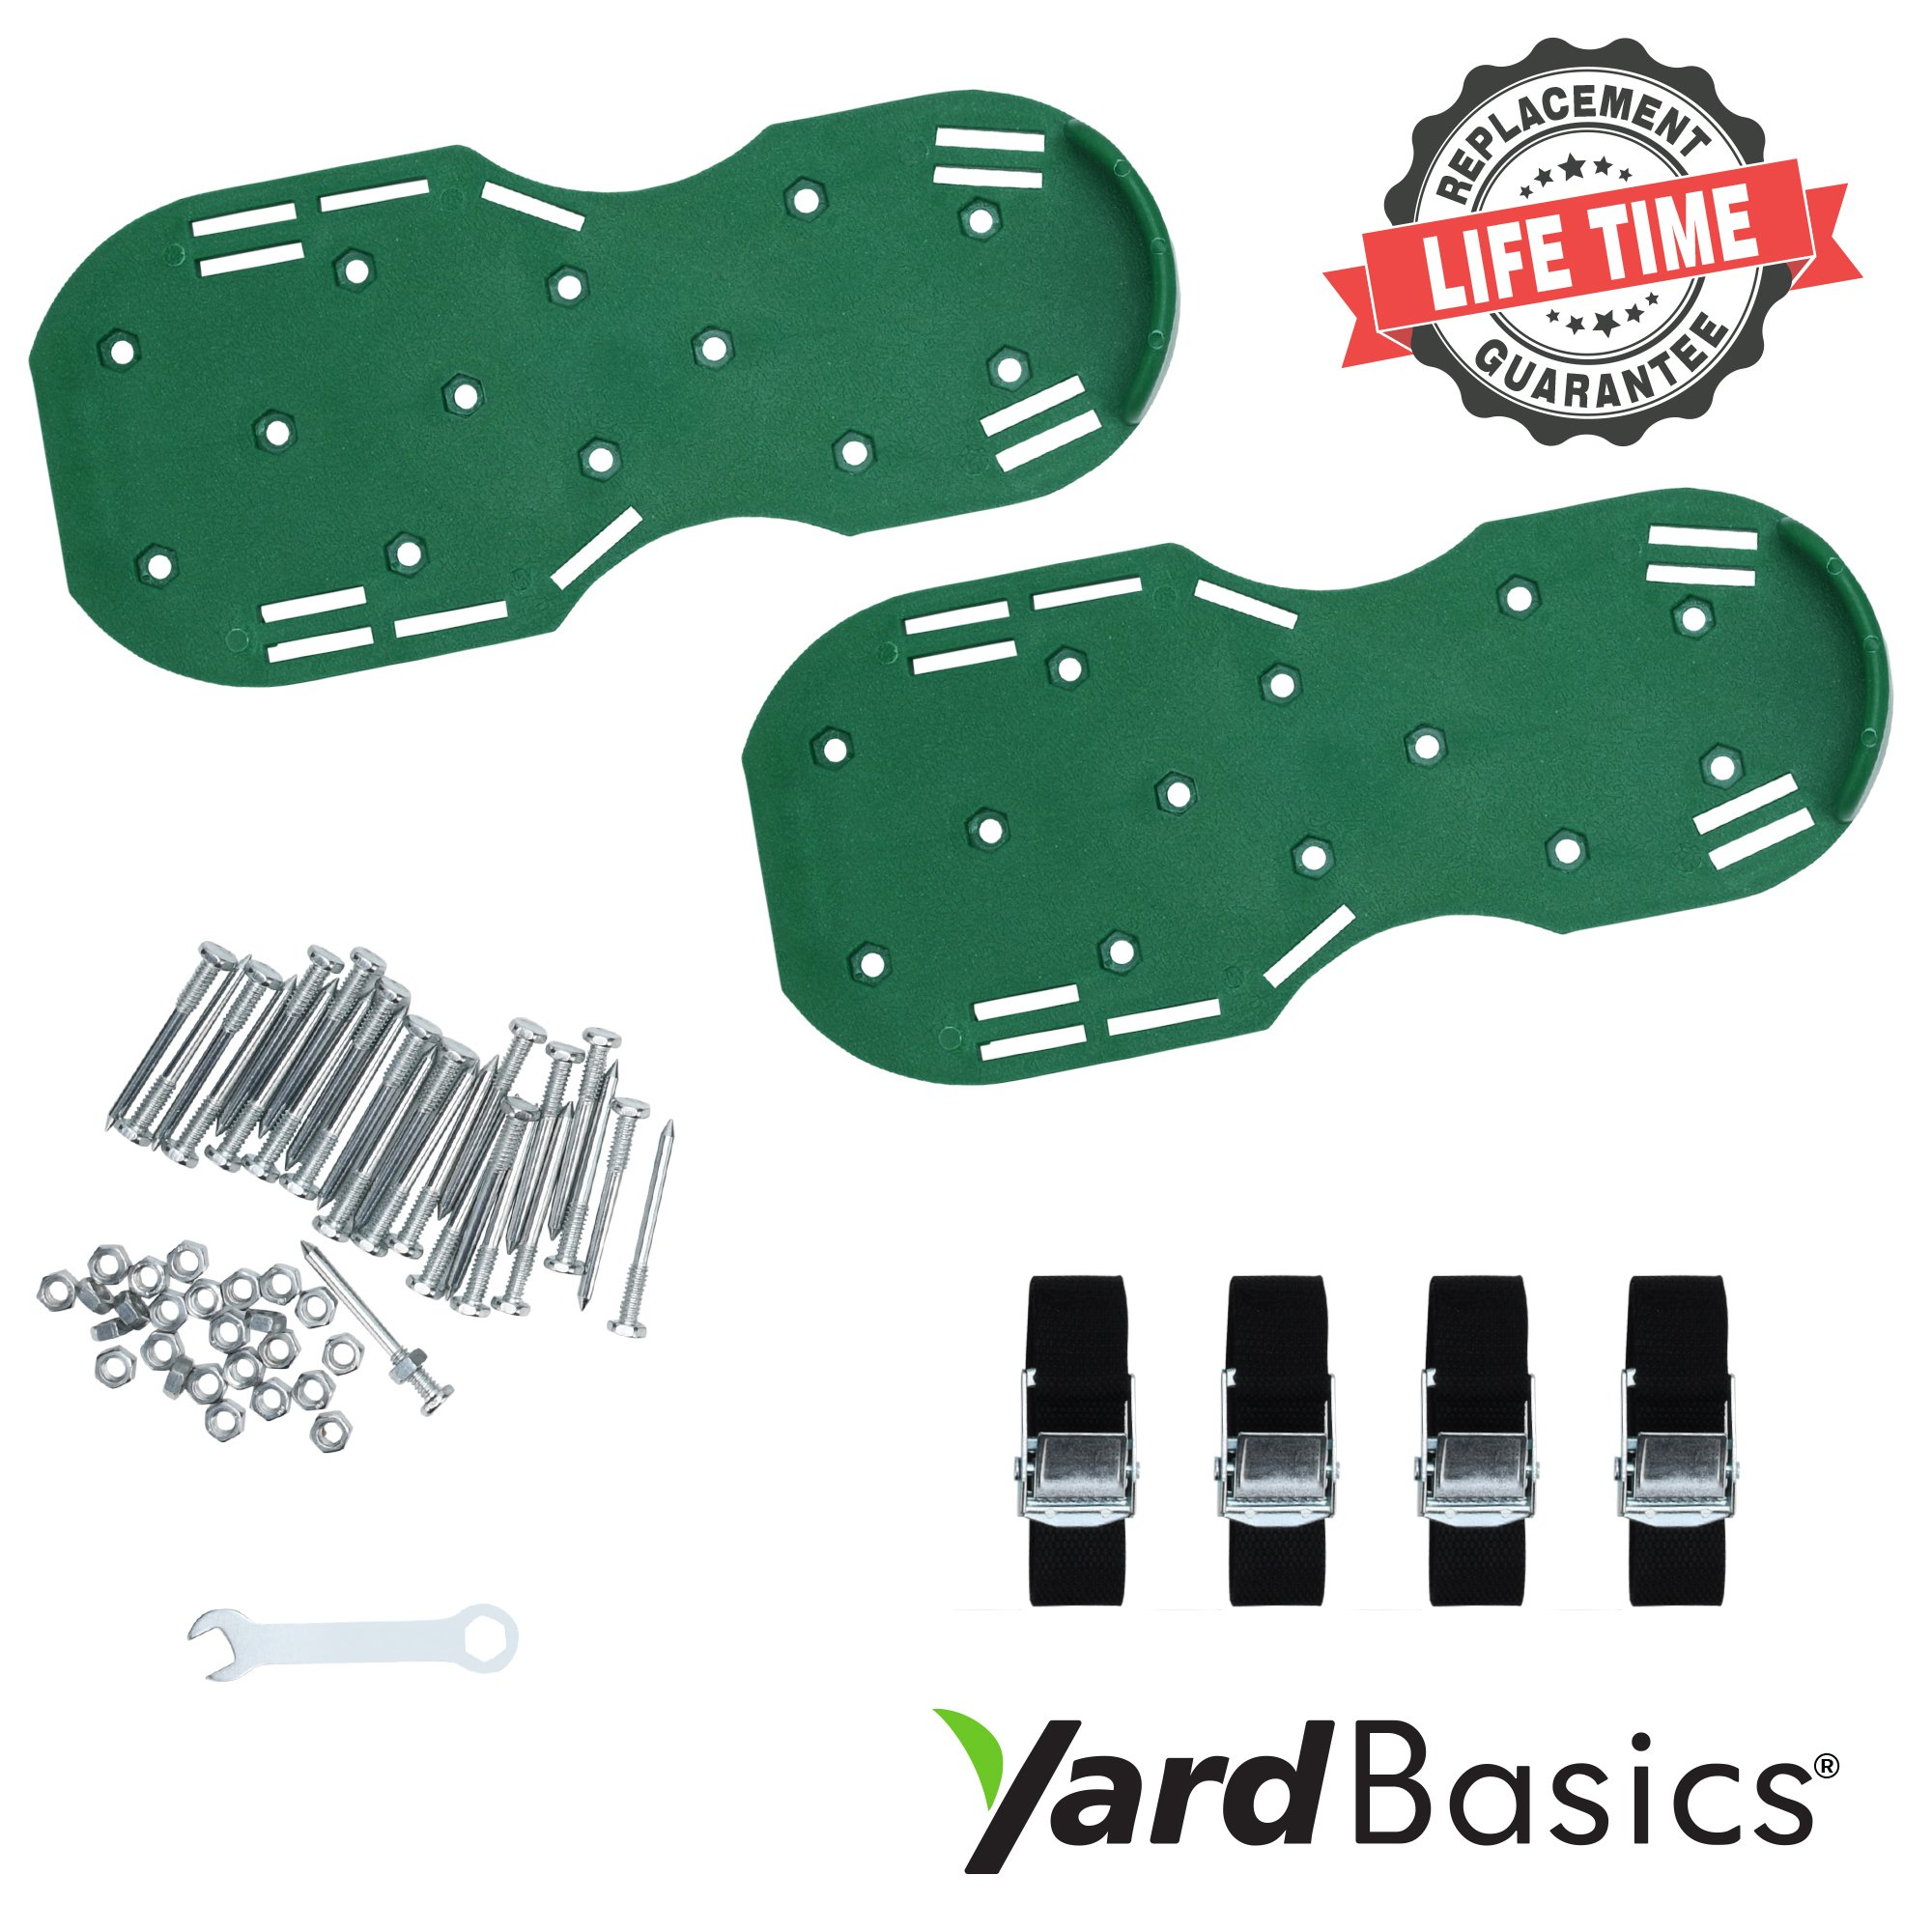 Yard Basics Aerator Shoes - Effective Heavy Duty Comfortable Lawn Aerator Shoes for a Greener Lawn, 4 Metal Buckles with Strong Adjustable Nylon Straps. A One Size Fits All Lawn and Grass Aerator.